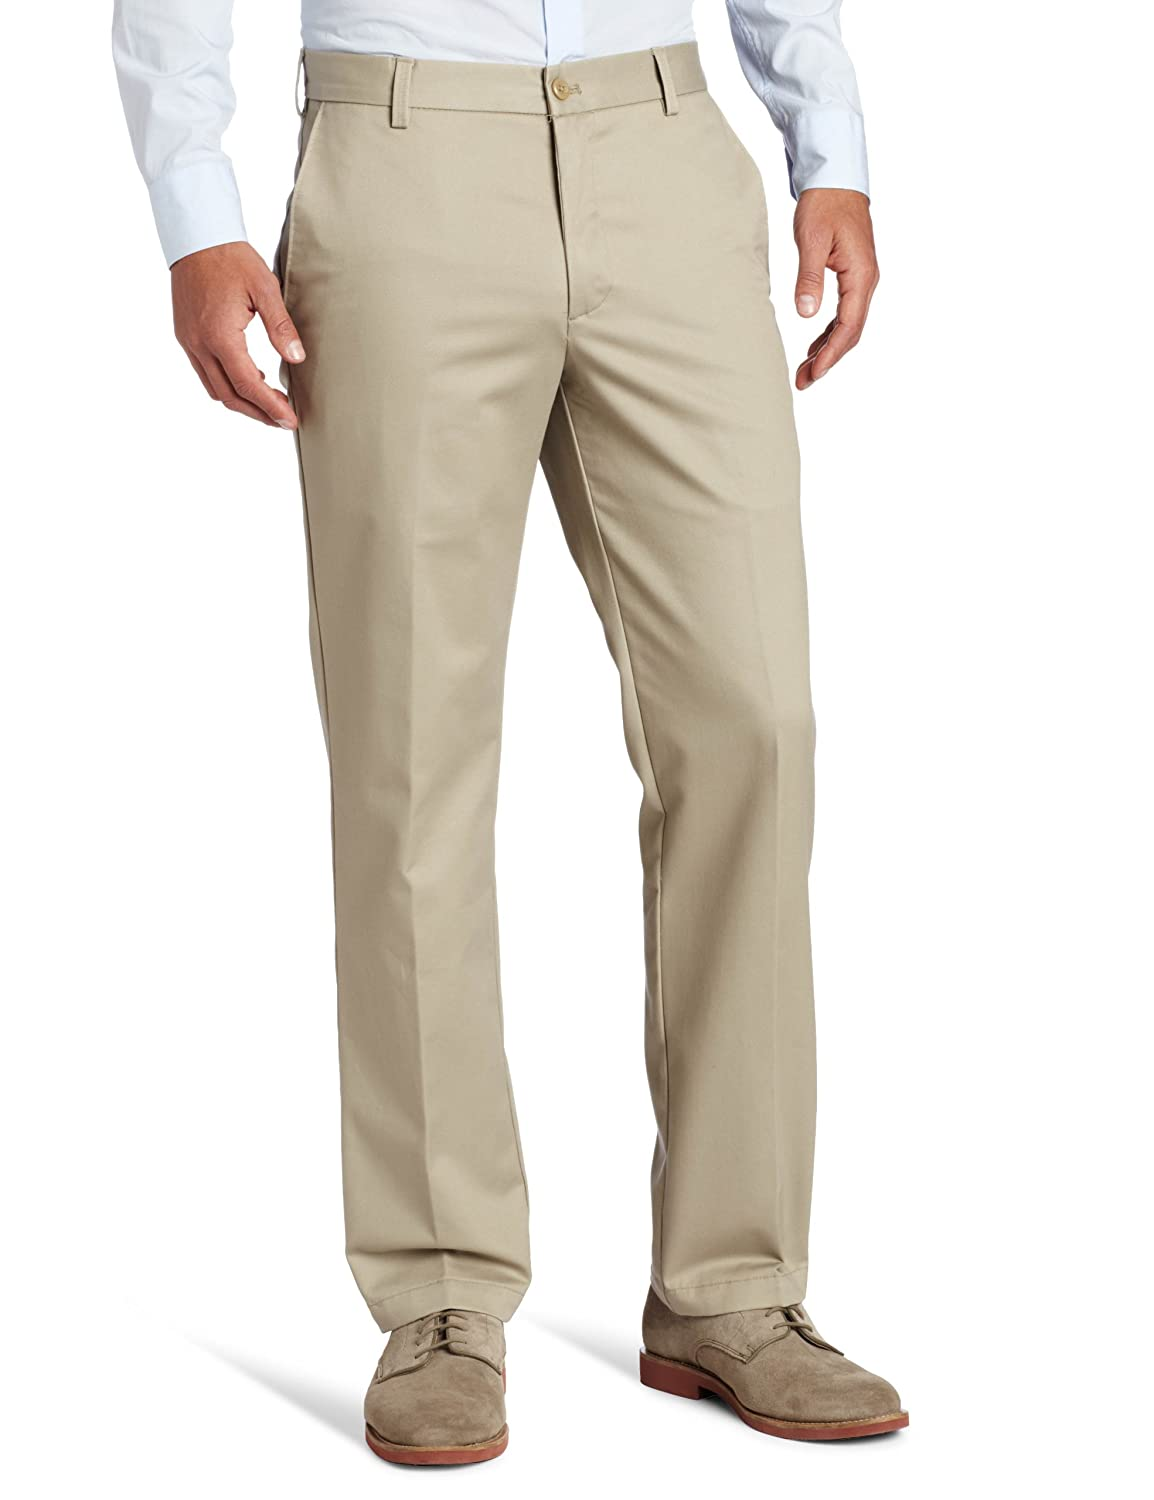 ef724a70f2 IZOD Men's American Chino Flat Front Slim Fit Pant